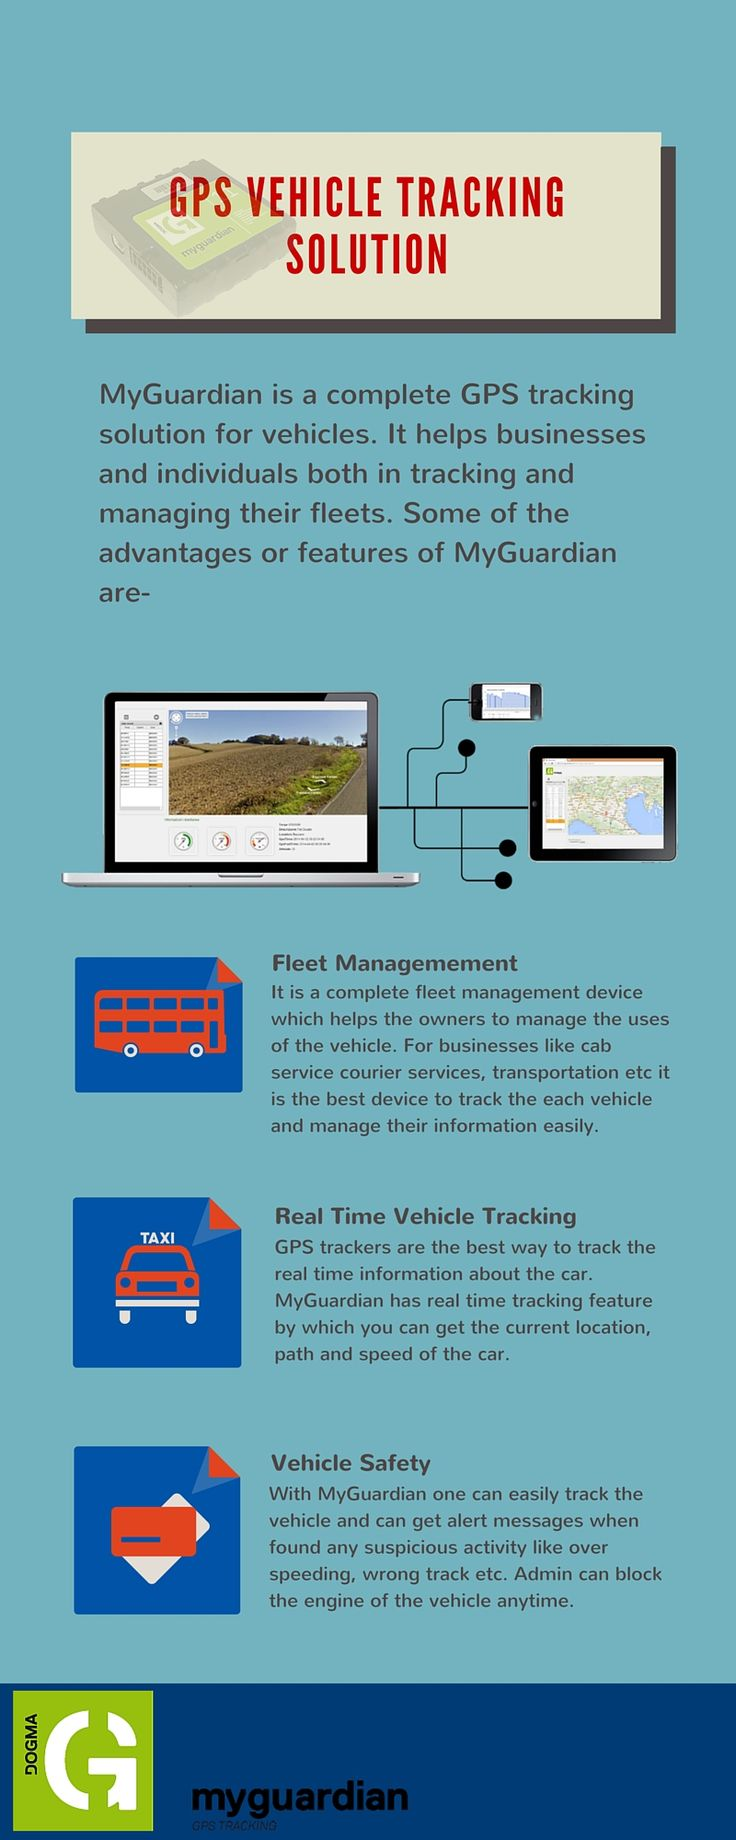 A Device Attached To The System Is Not Functioning Prepossessing 13 Best Gps Tracking And Fleet Management Images On Pinterest Decorating Design